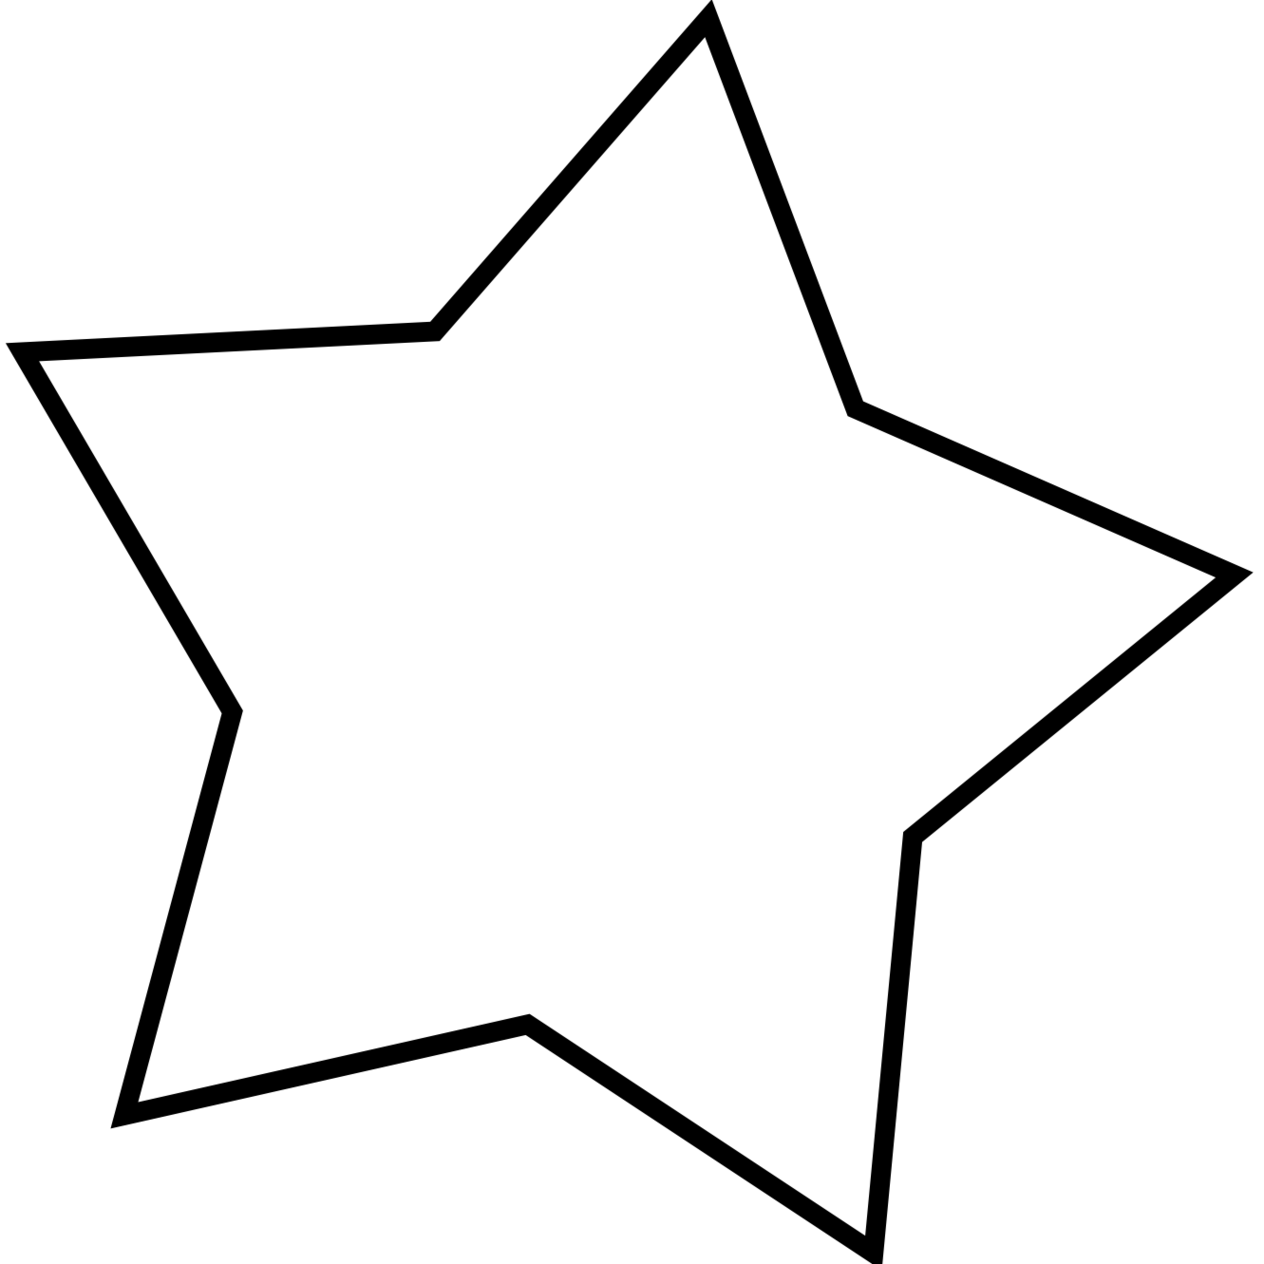 star clipart png black and white clipartall